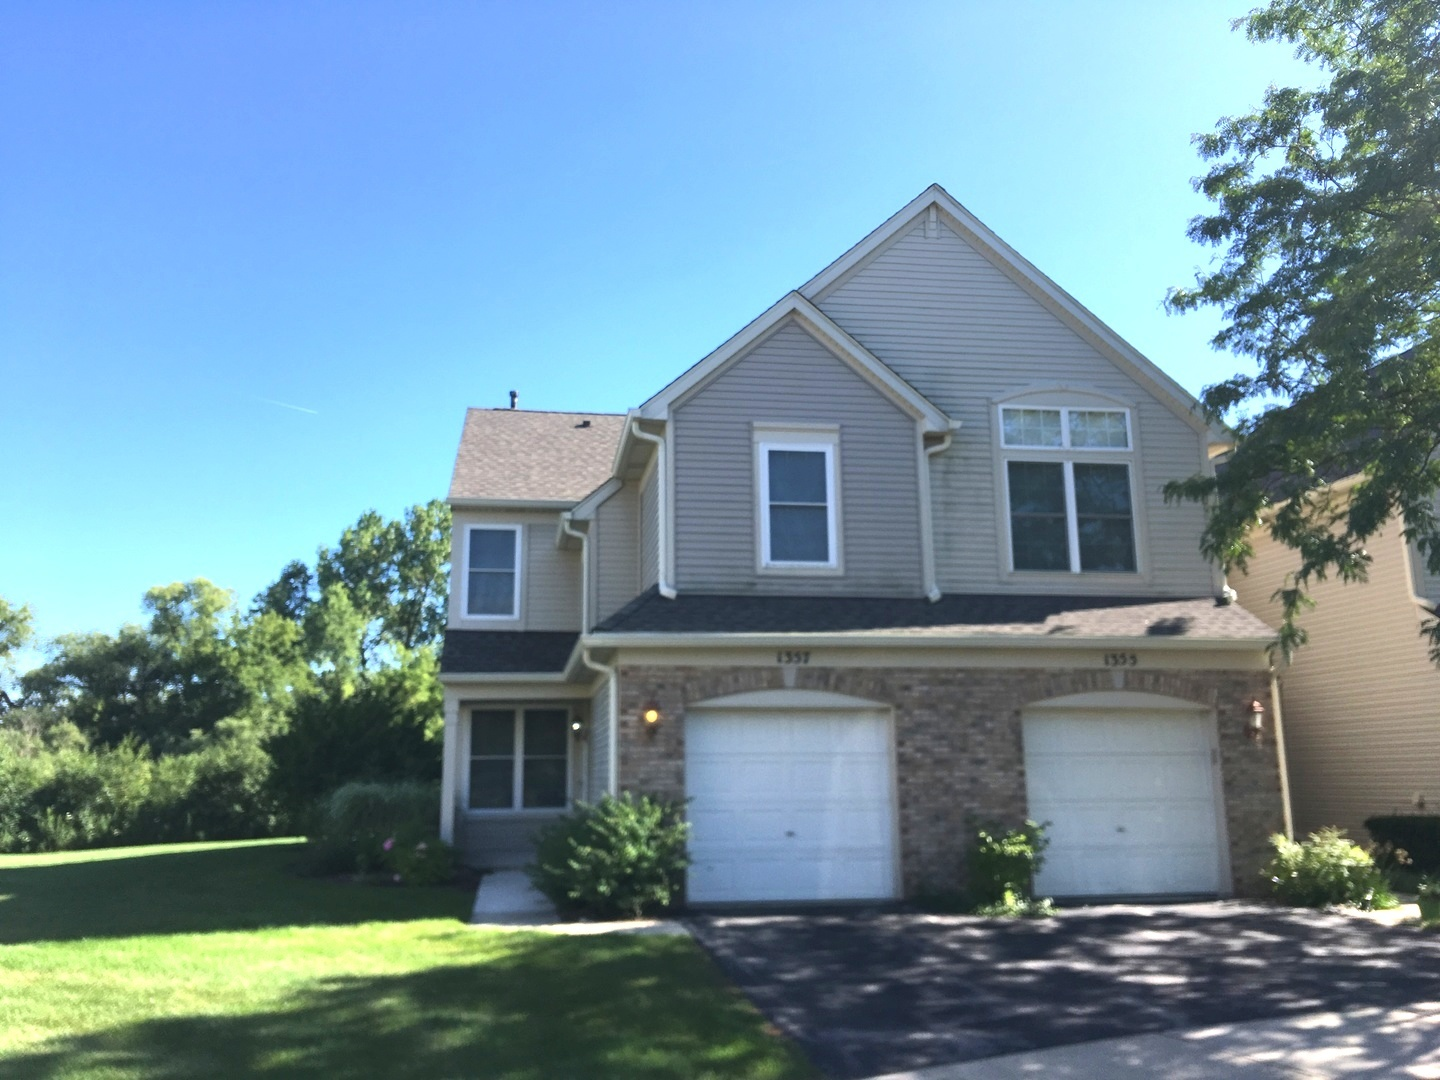 1357 Longchamps, Grayslake, Illinois, 60030